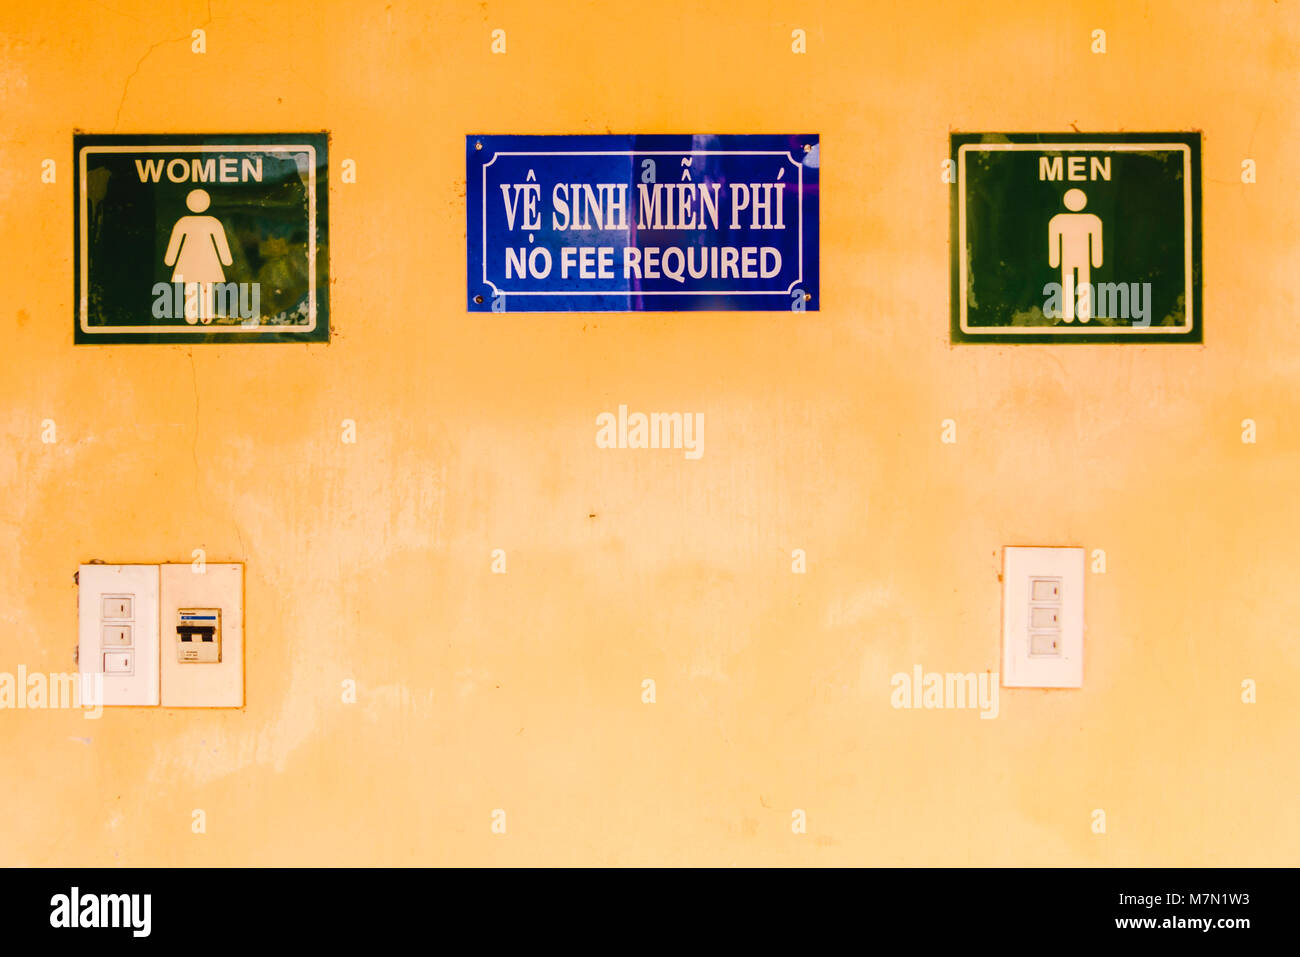 Signs at a public toilet advising that no fee is required to use them. - Stock Image